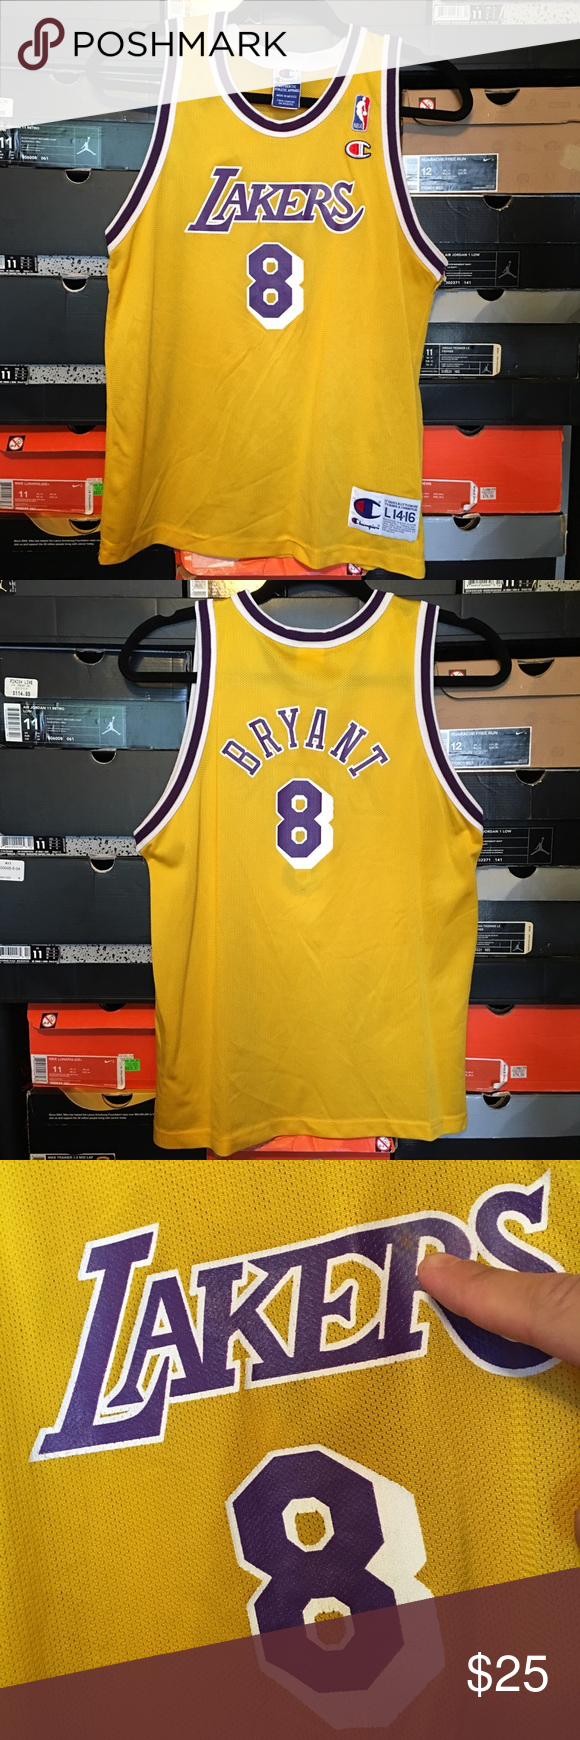 ad94ff39199 Vintage Champion Lakers Kobe Bryant Rookie Jersey Vintage Champion Lakers Kobe  Bryant Rookie Jersey. Kids size Large 14-16. Jersey had some minor signs of  ...